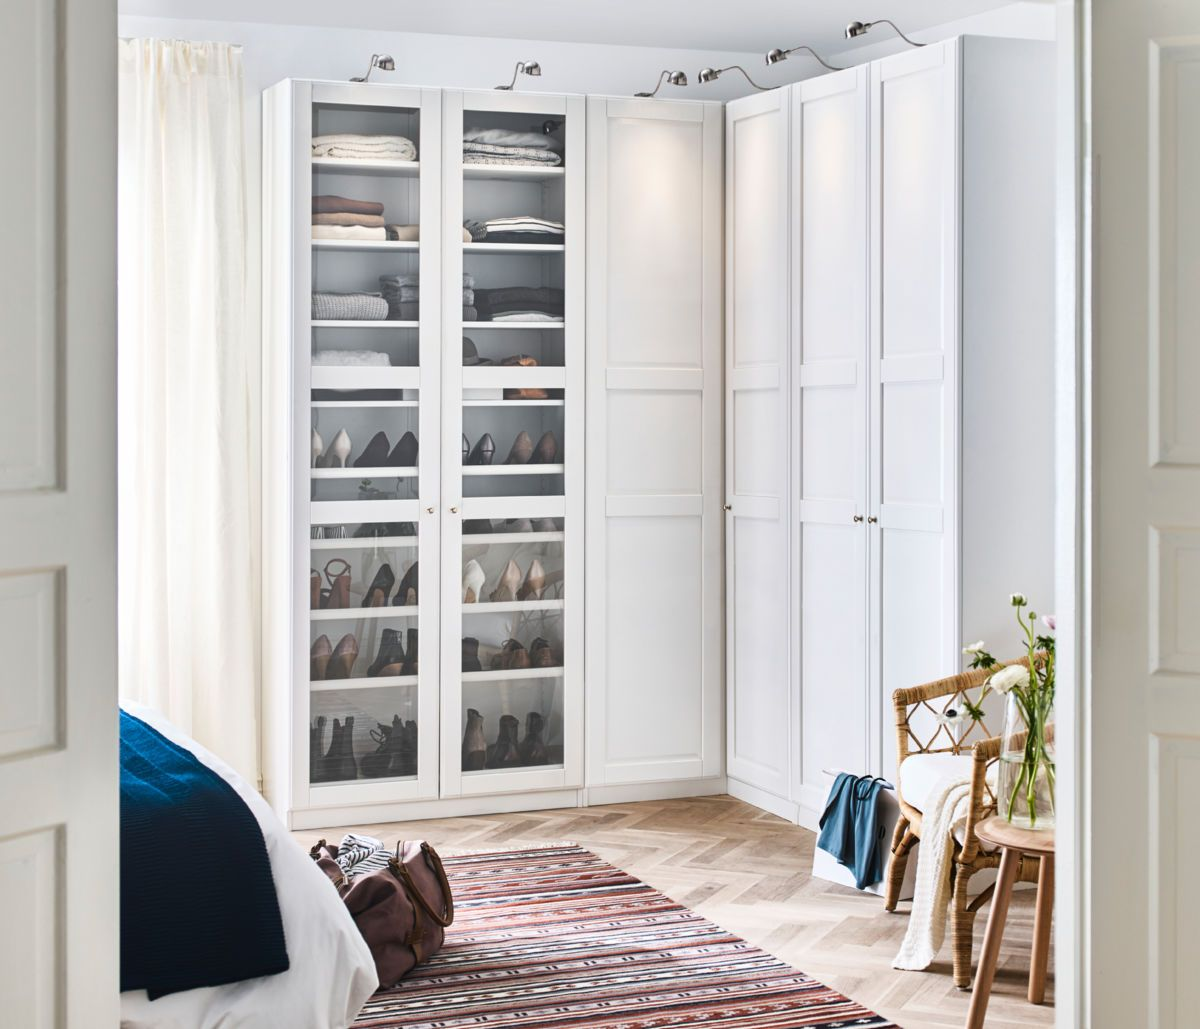 Ikea Wardrobe Brochure 2018  Bedroom  Pinterest  Brochures Cool Ikea Design Your Own Bedroom Decorating Design